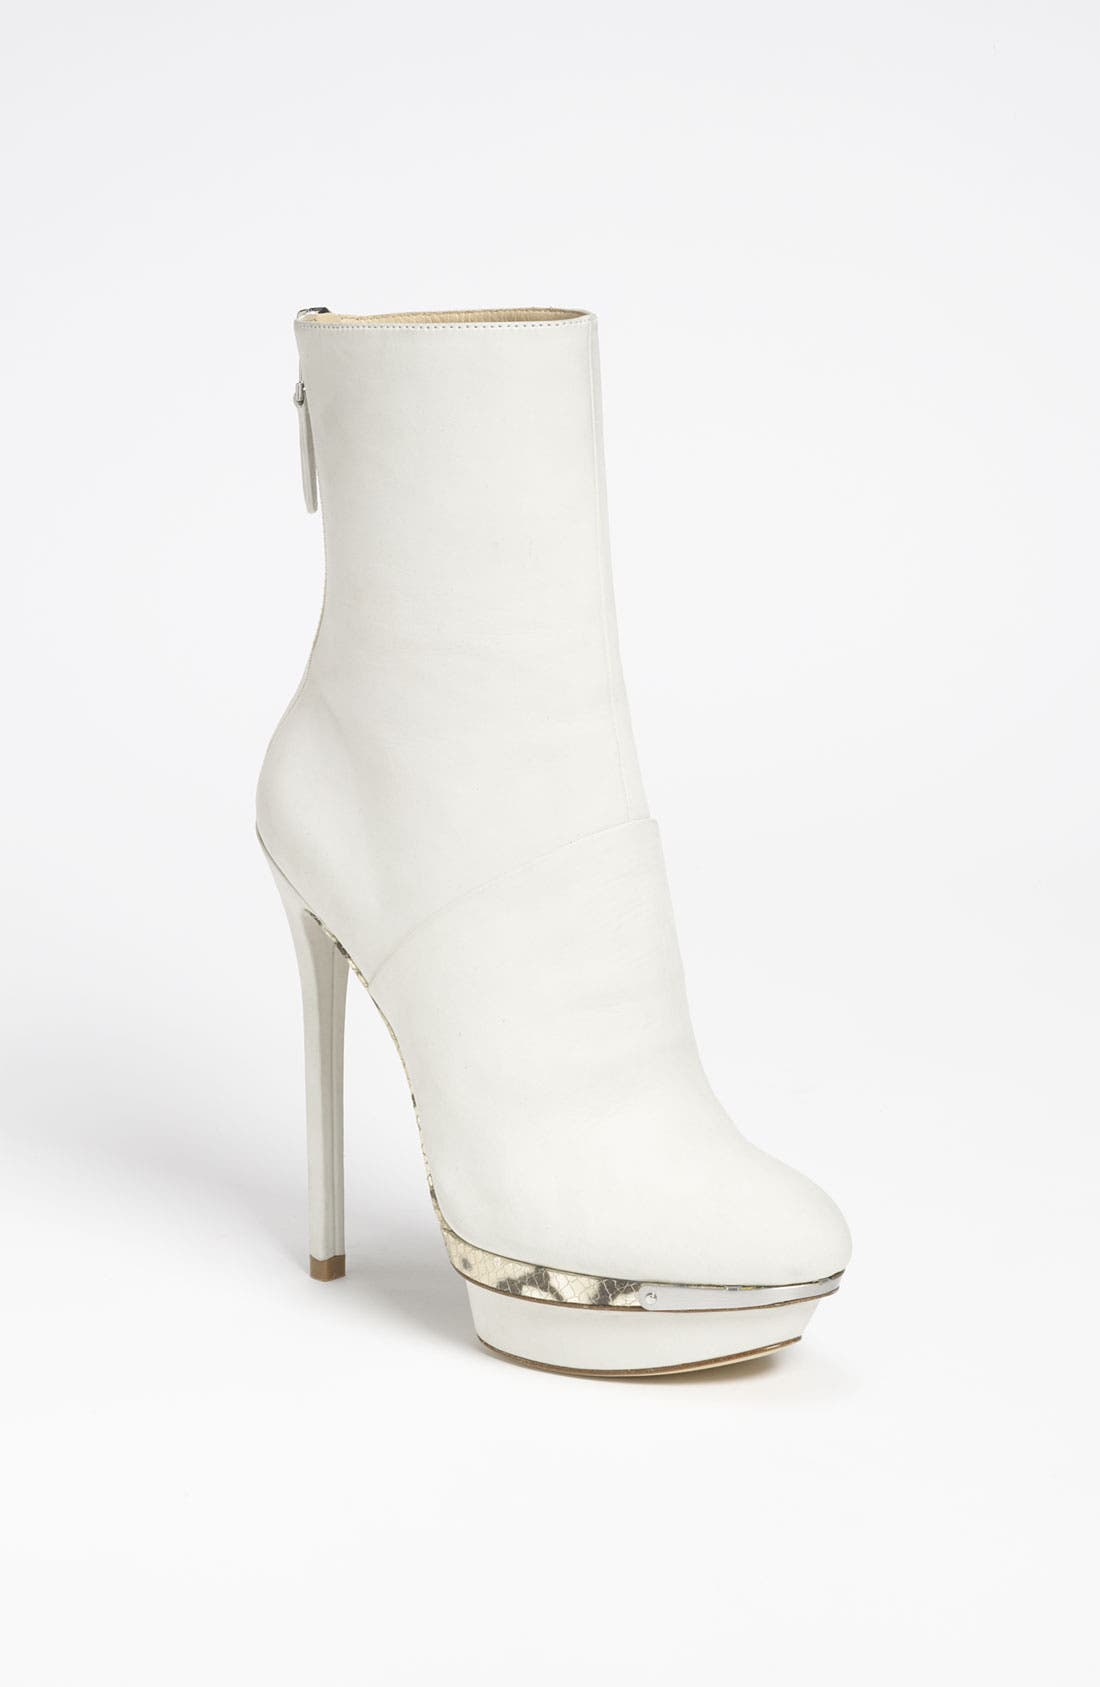 Alternate Image 1 Selected - B Brian Atwood 'Fuveau' Boot